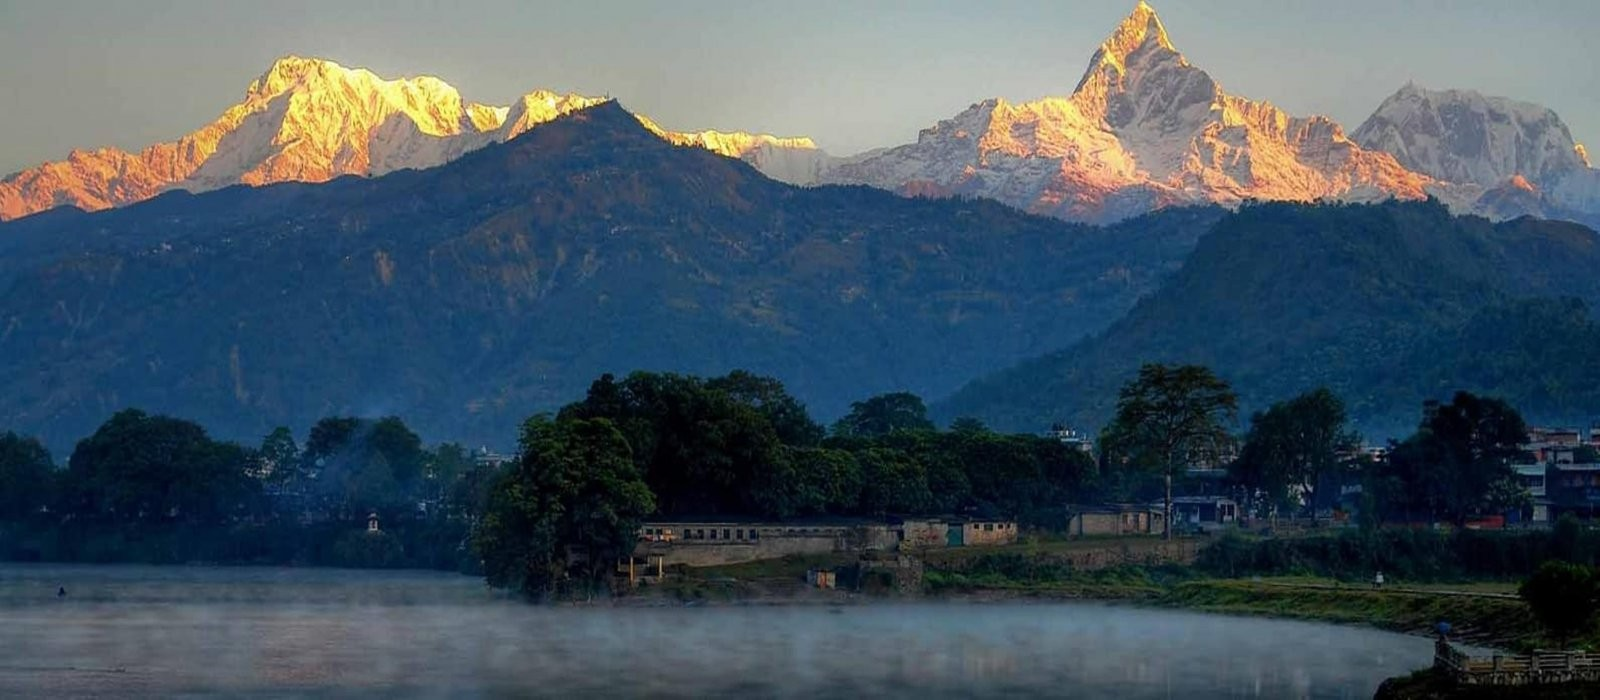 Pokhara Sightseeing Day Tour